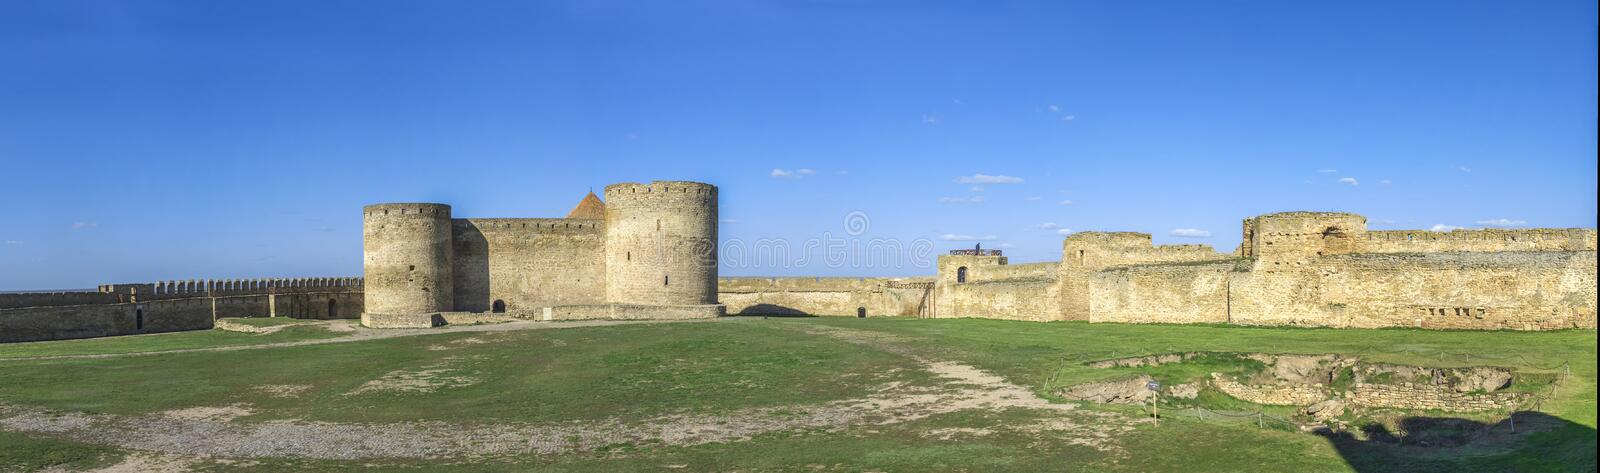 Fortress Walls of the Akkerman Citadel in Ukraine. Akkerman, Ukraine - 03.23.2019. Panoramic view of the Fortress walls and towers from the inside of the royalty free stock image